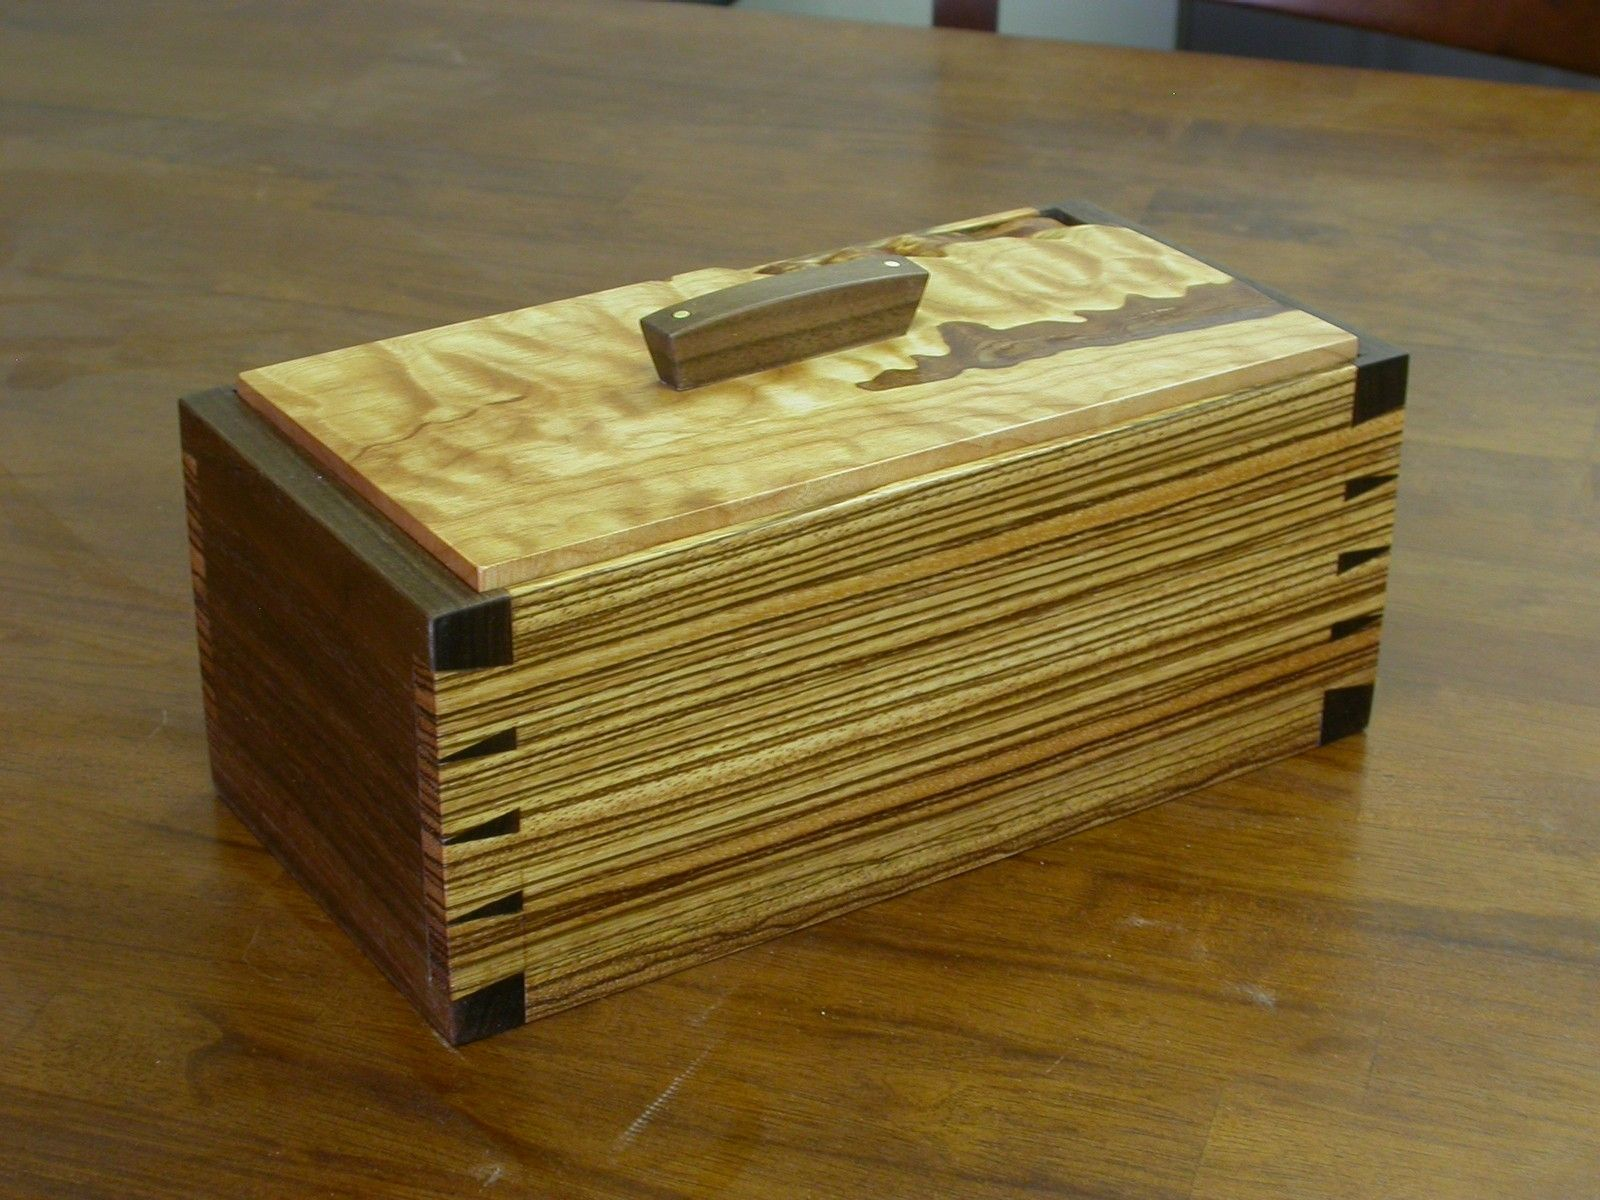 Zebra Wood Box Small Woodworking Projects Pinterest Wood boxes